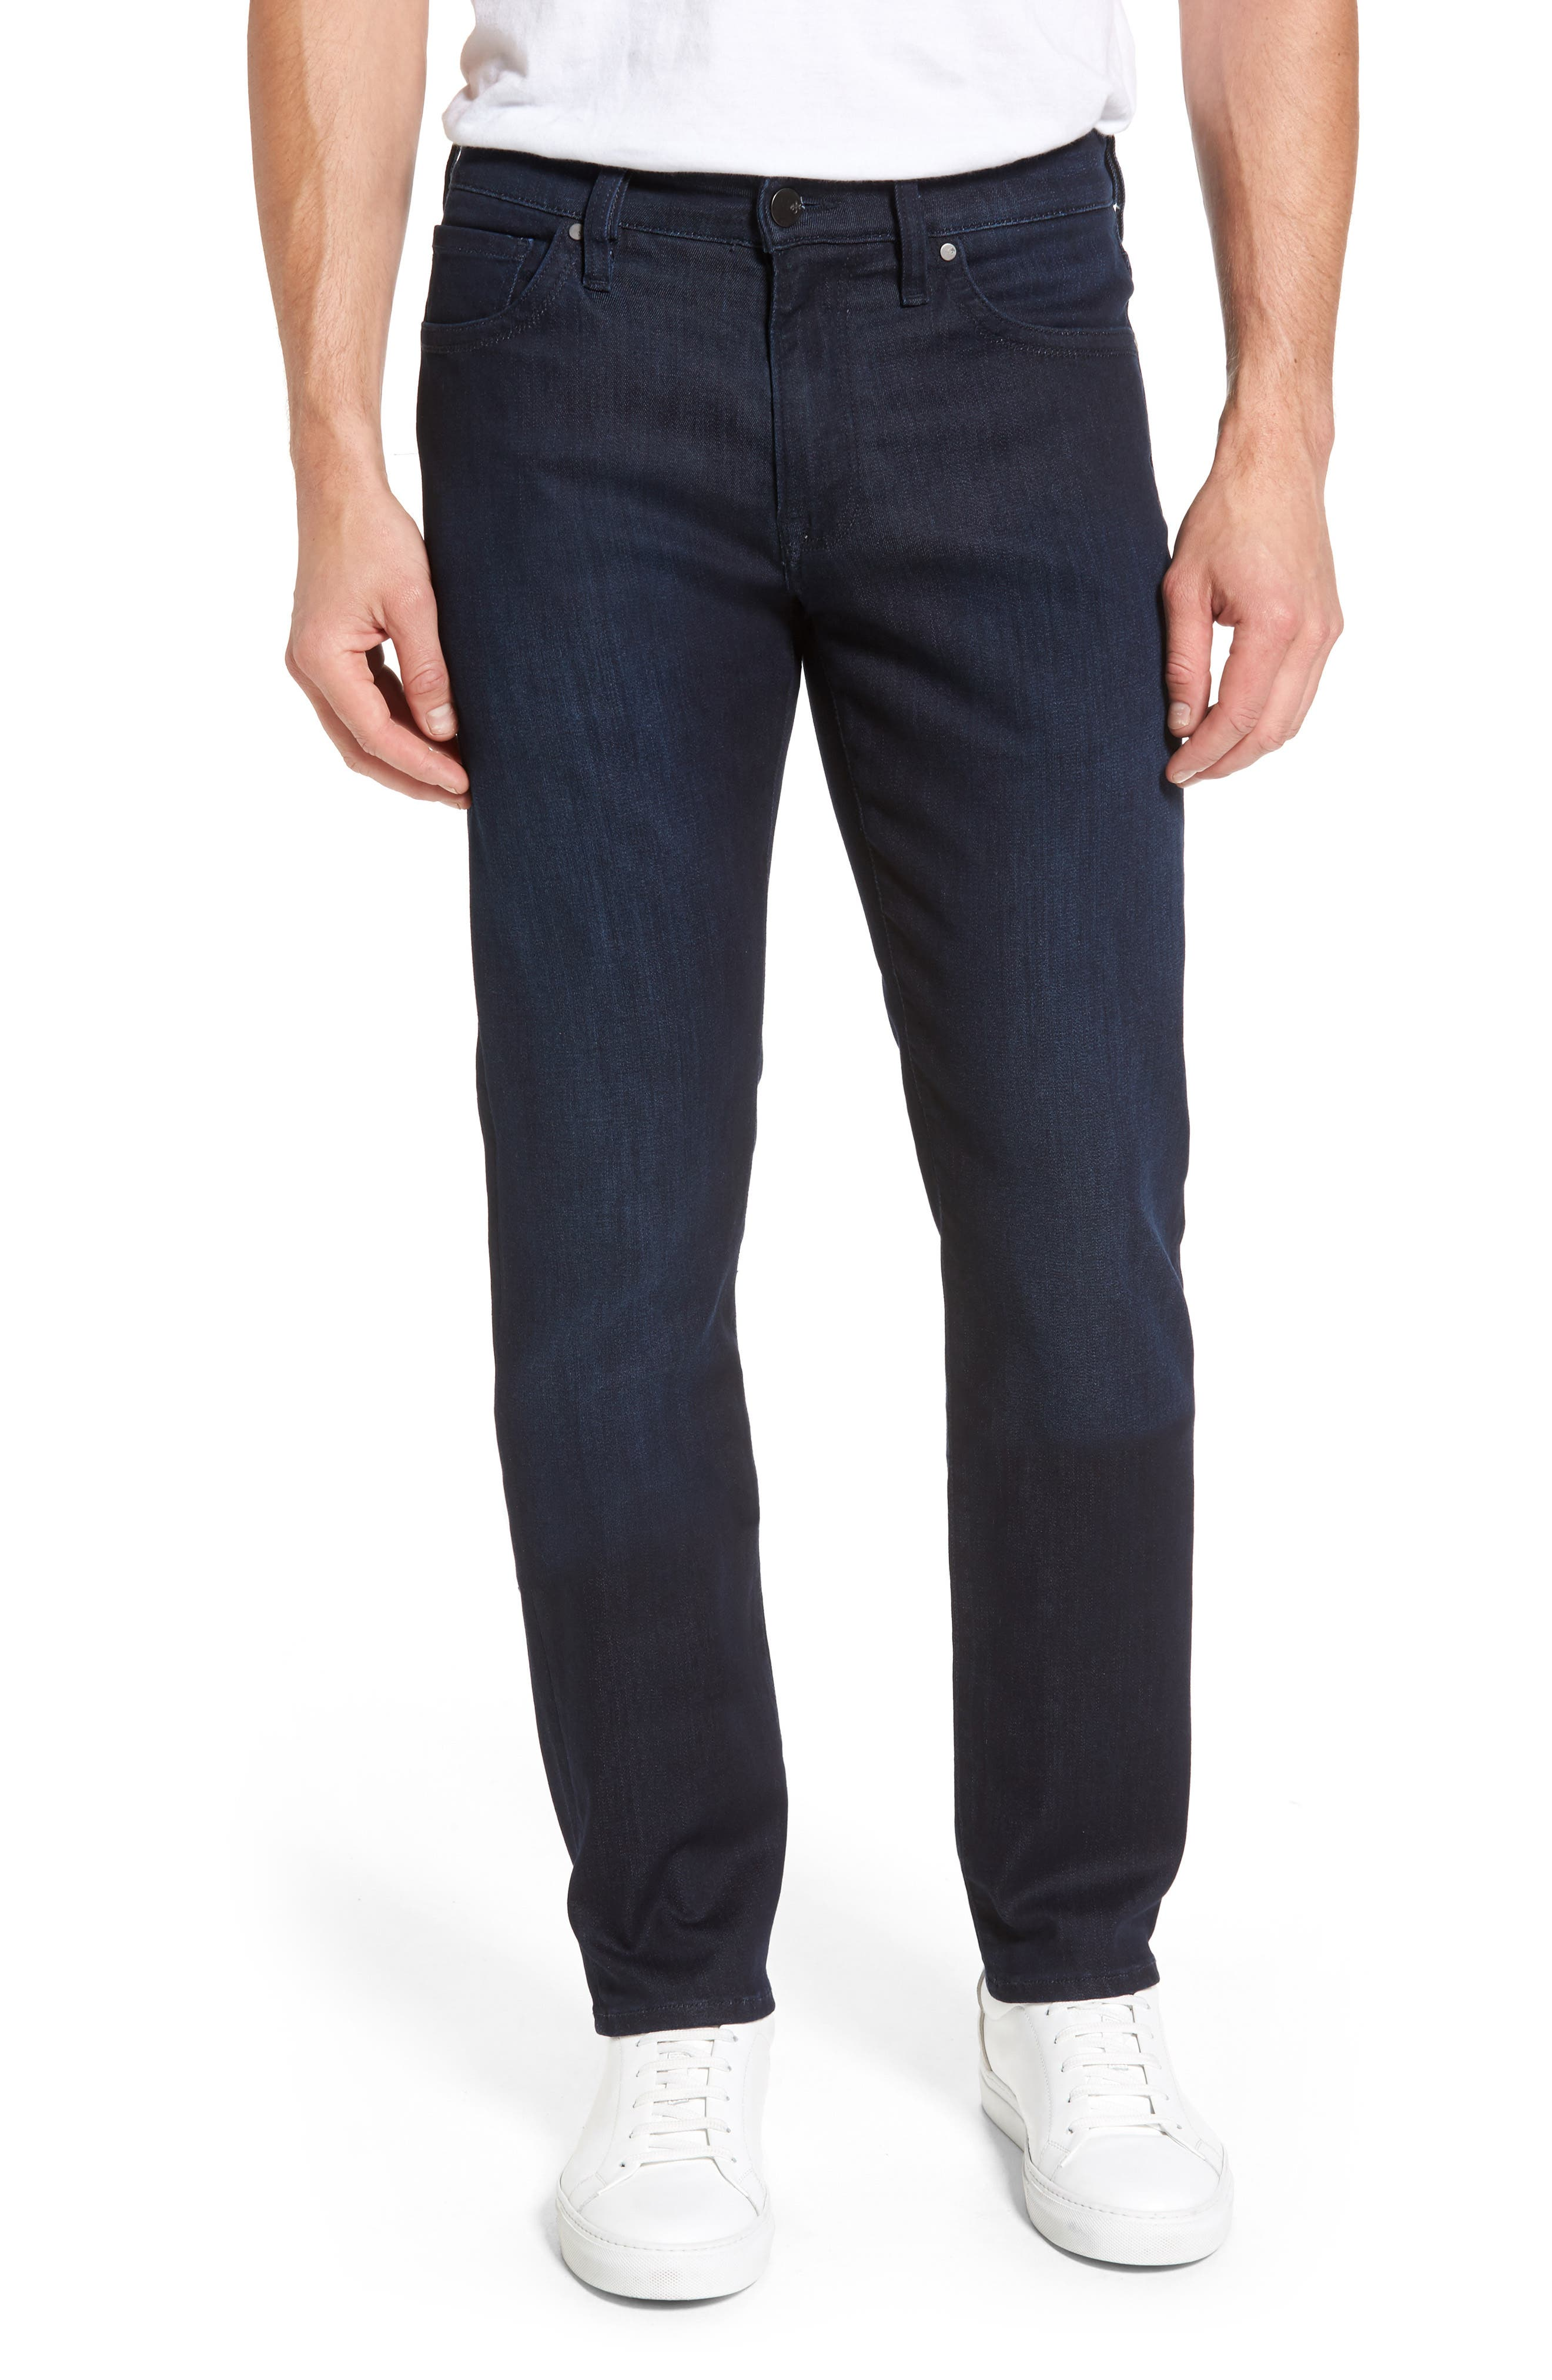 Courage Straight Leg Jeans,                         Main,                         color,